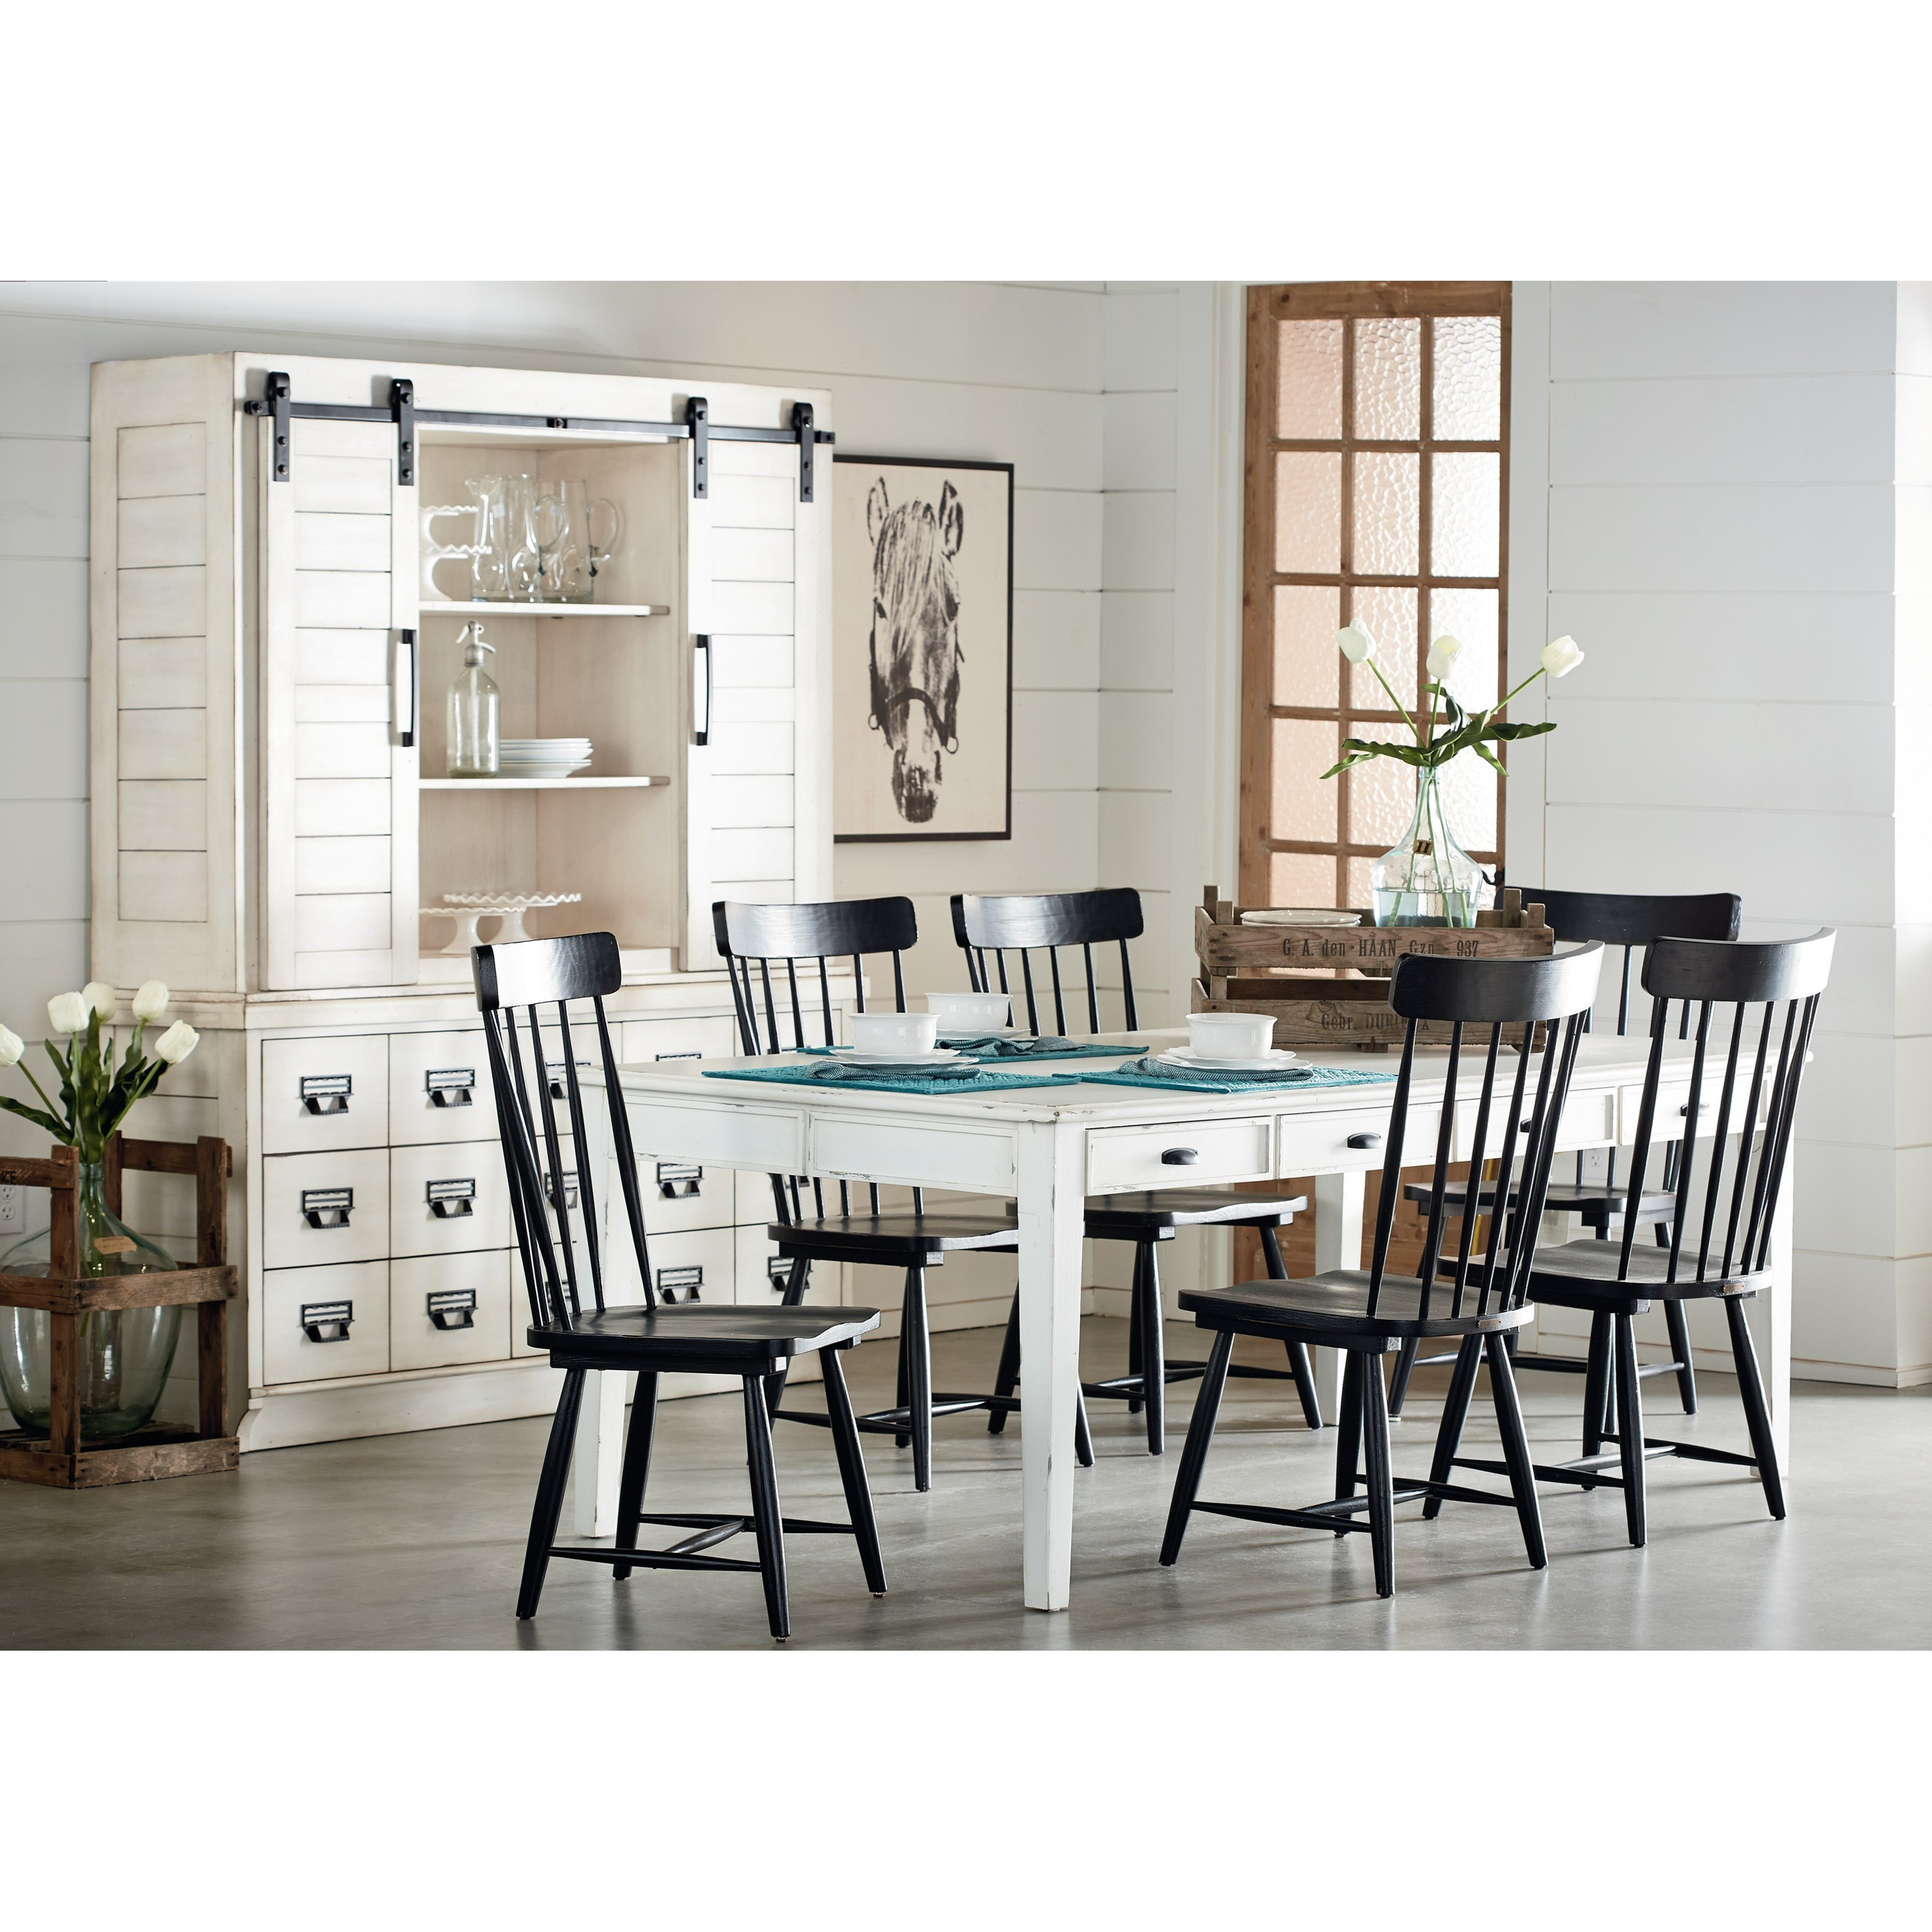 Kitchen Dining Group With 6 Table By Magnolia Home By